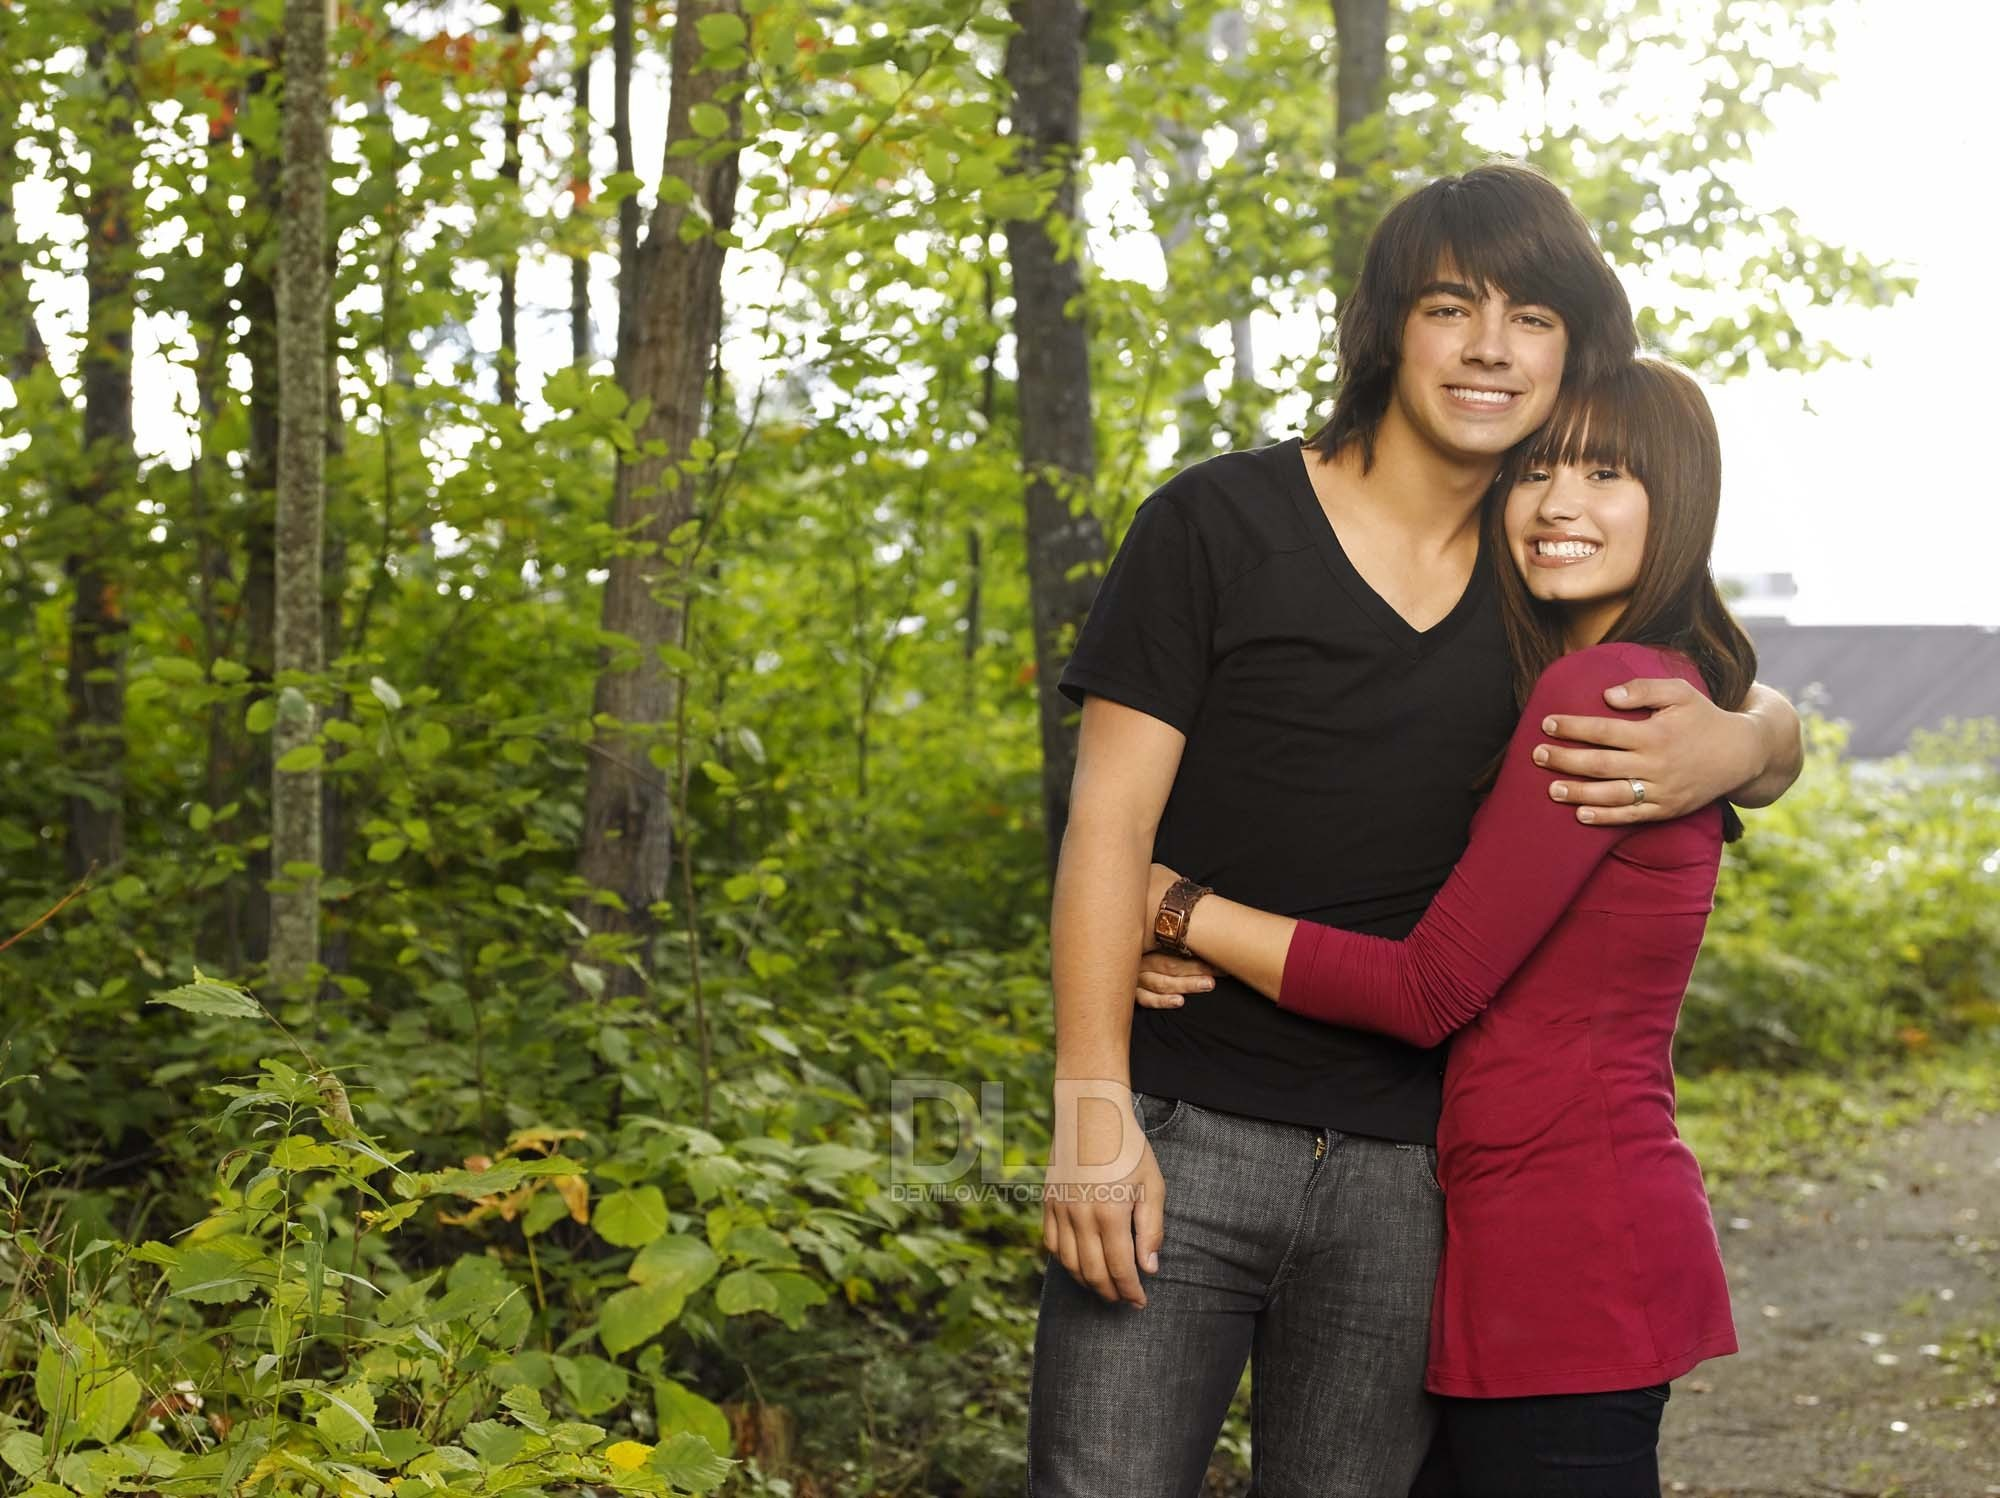 camp rock mitchie and shane first meet